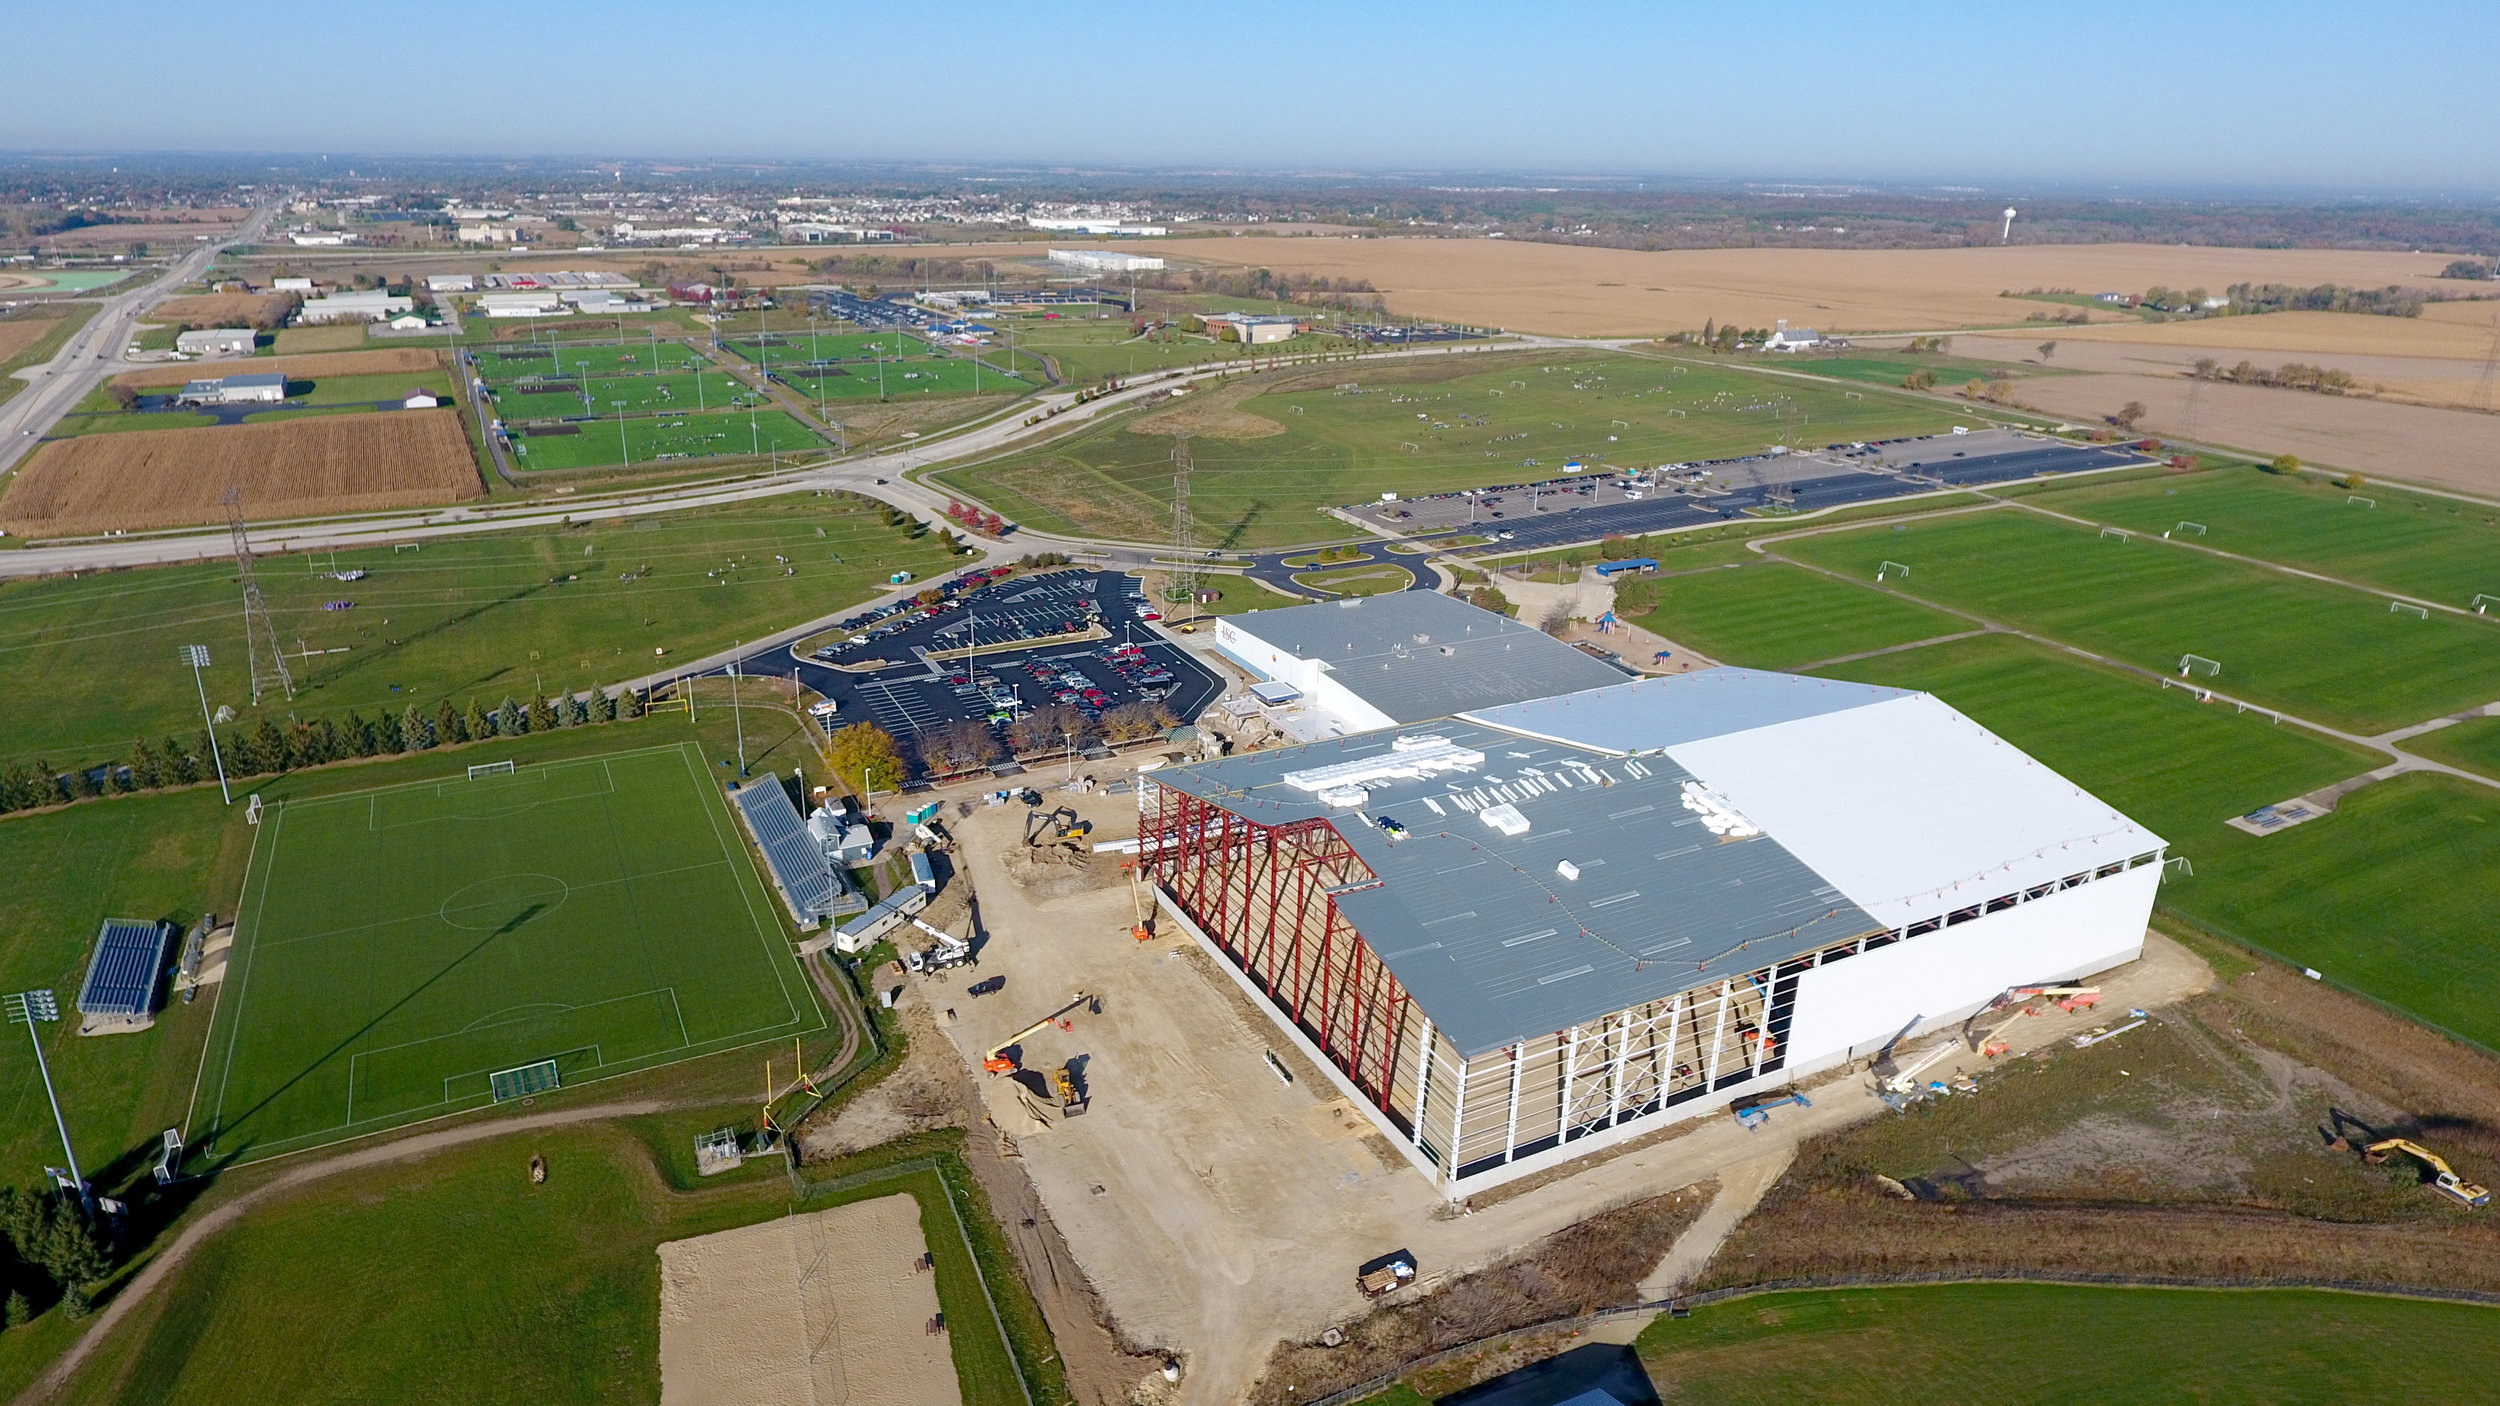 ISC_Aerial_Expansion_10-23-16.jpg